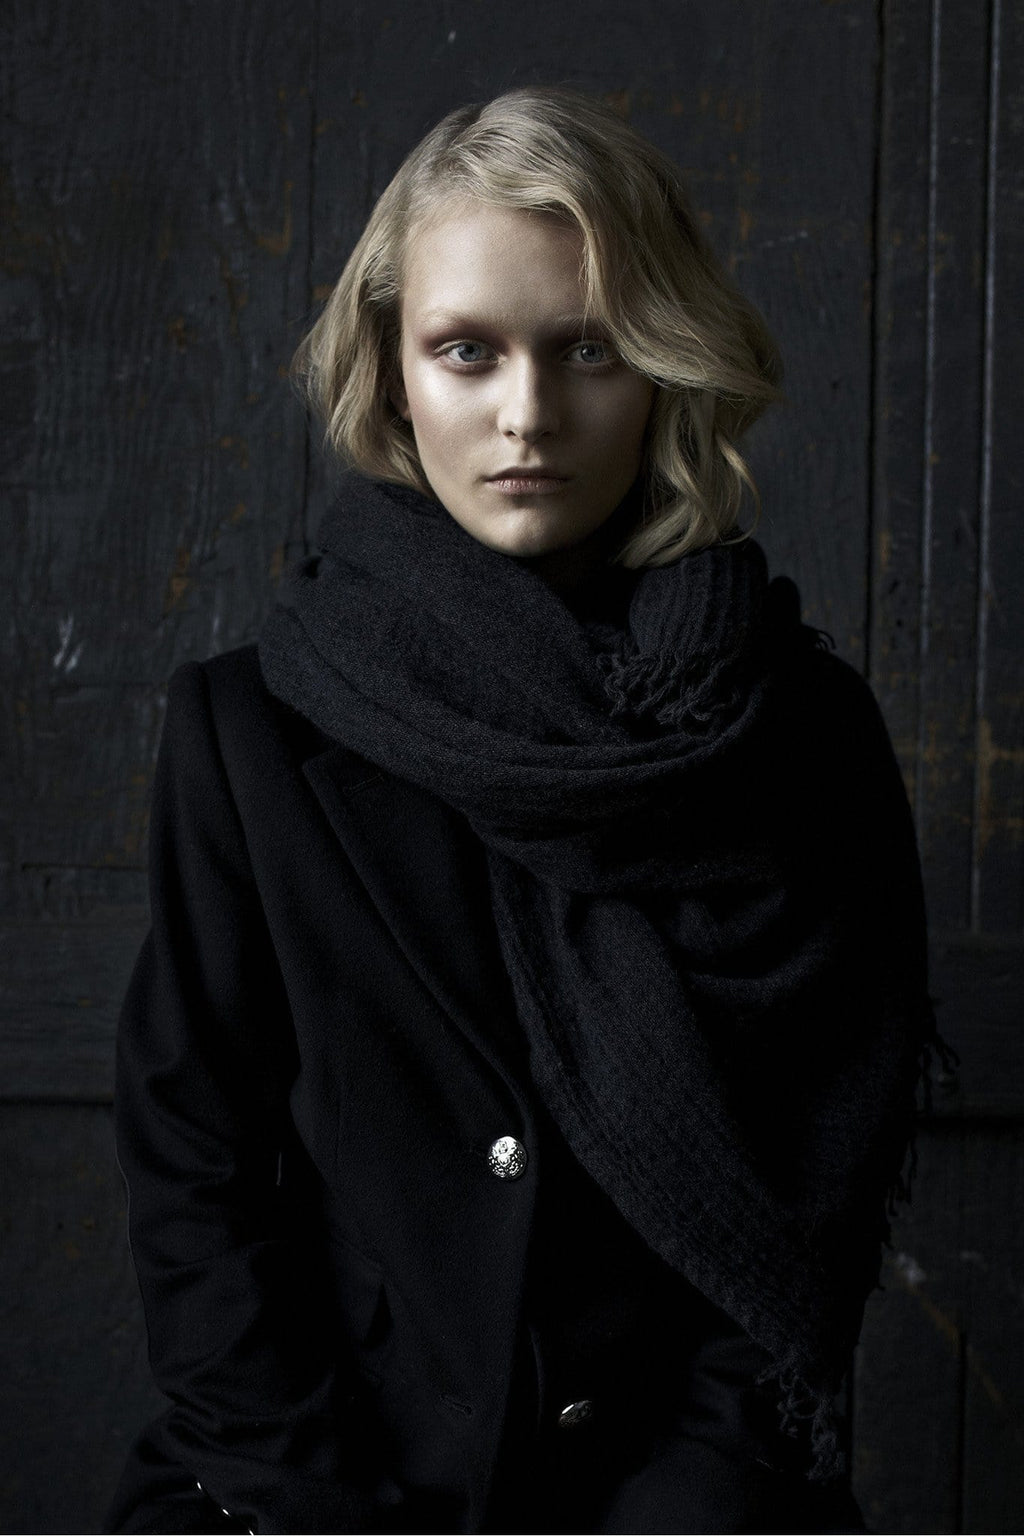 The Cashmere Scarf - Himelhoch's